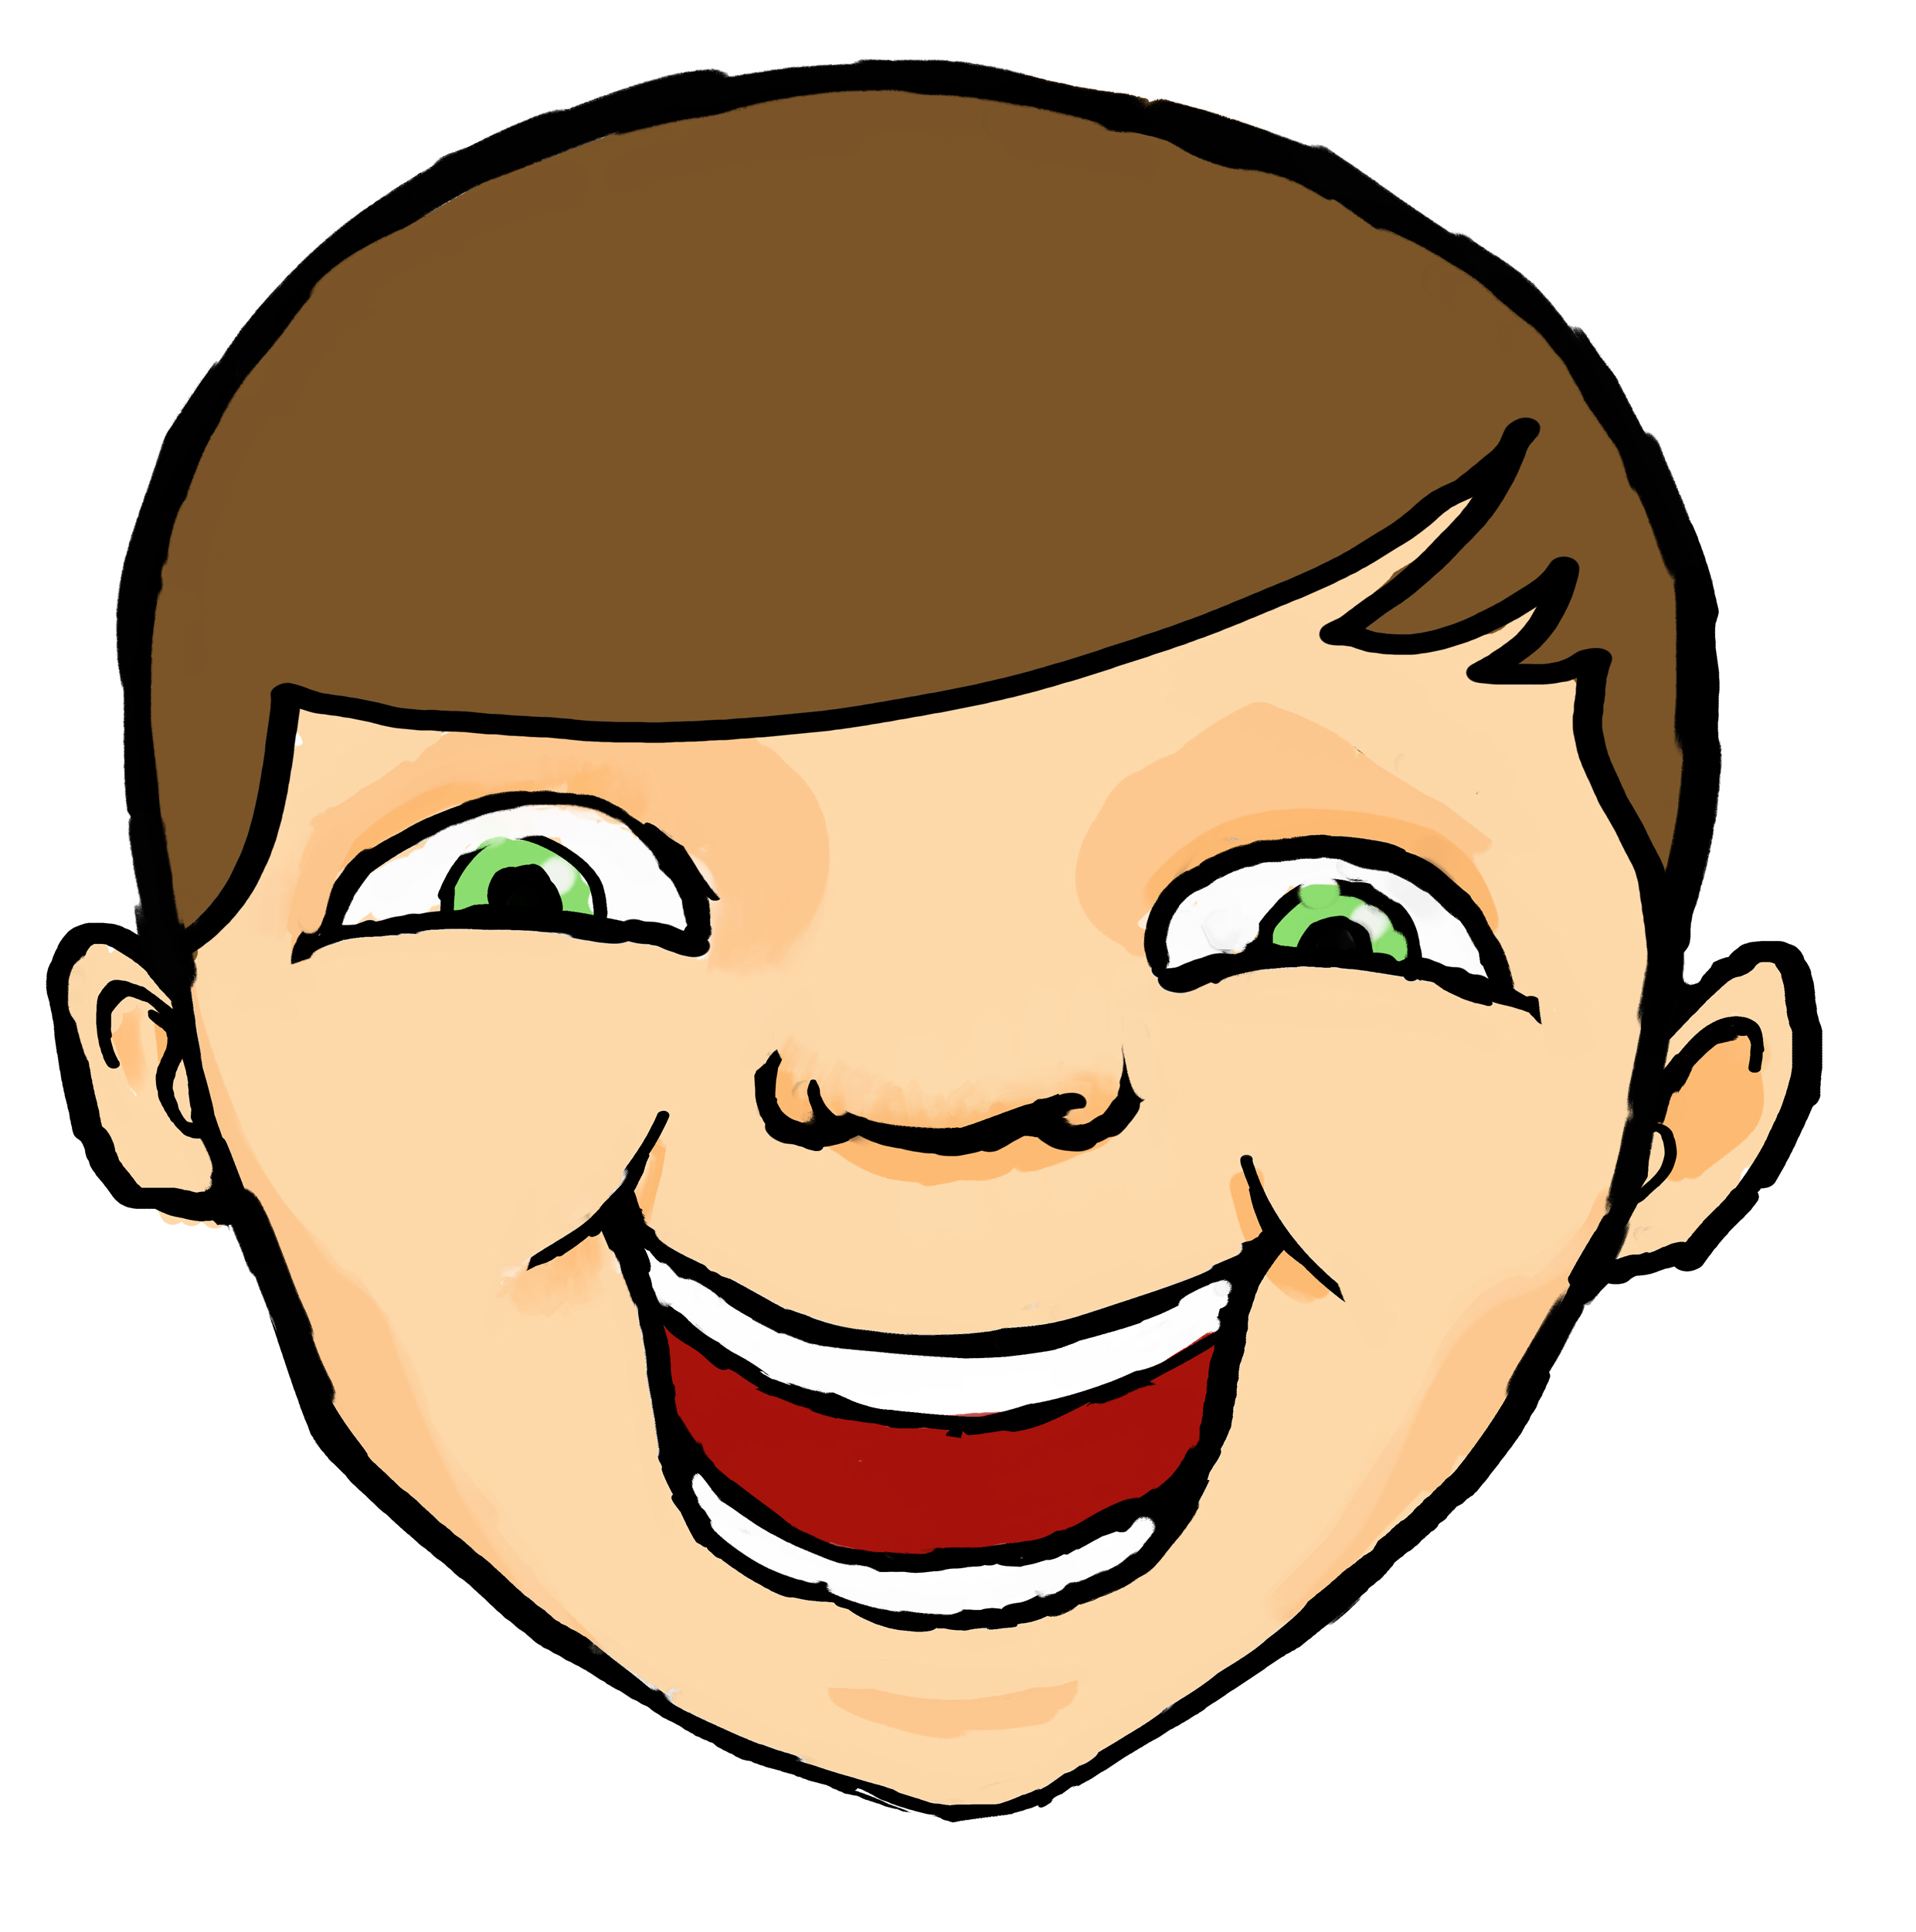 LAUGHING FACES CARTOONS - ClipArt - 990.1KB